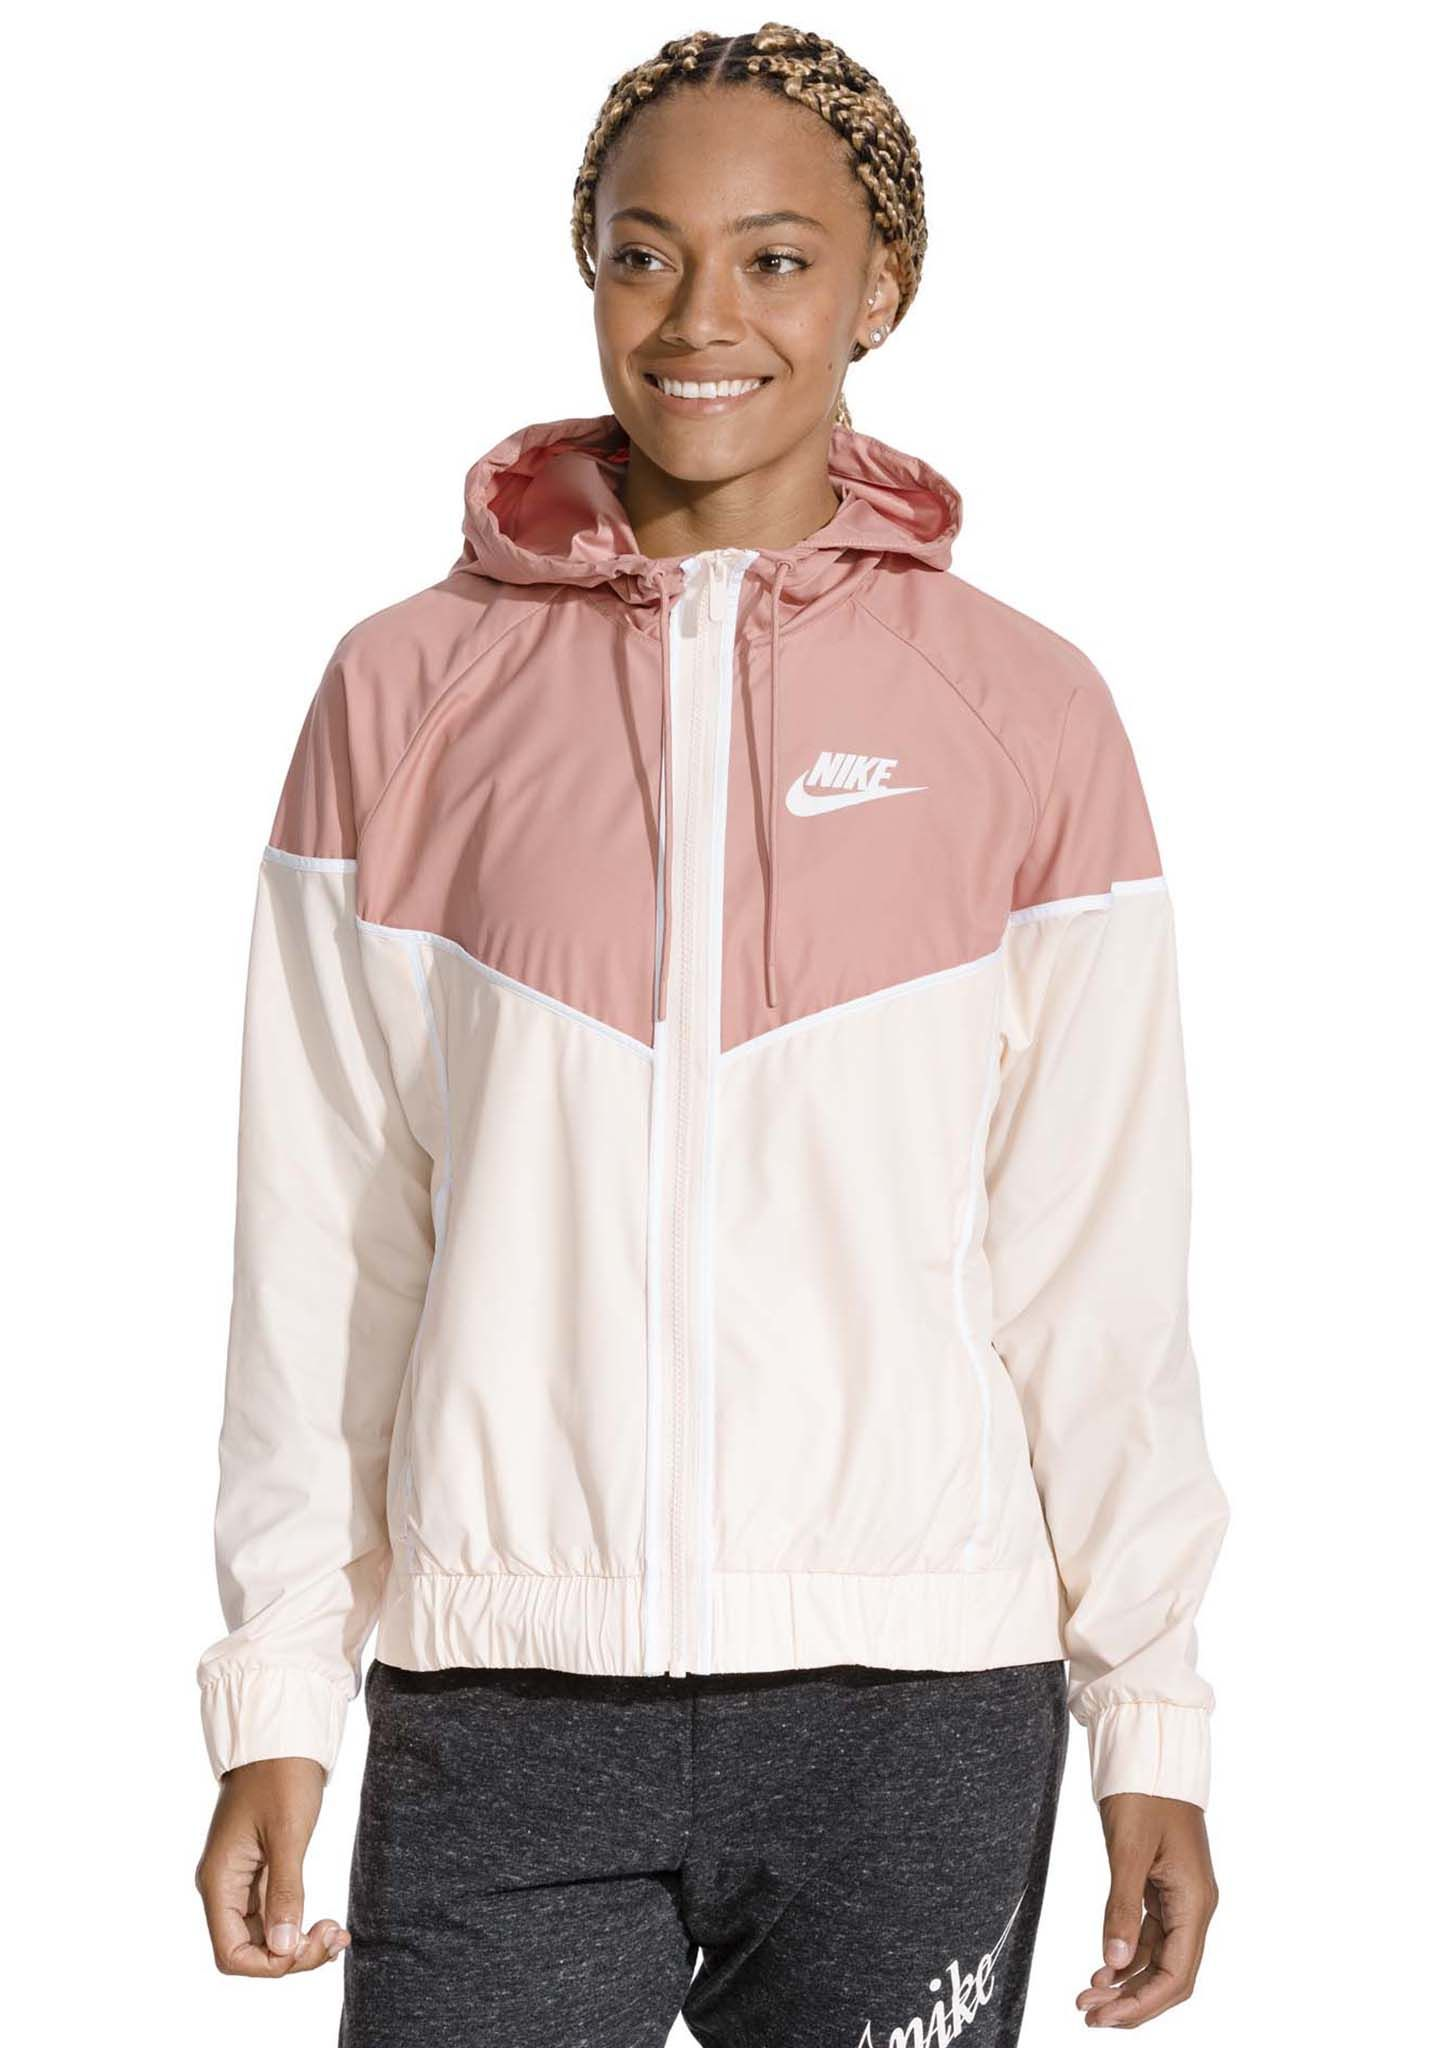 buy online 34196 c580e NIKE SPORTSWEAR Windrunner - Jacket for Women - Pink - Plane